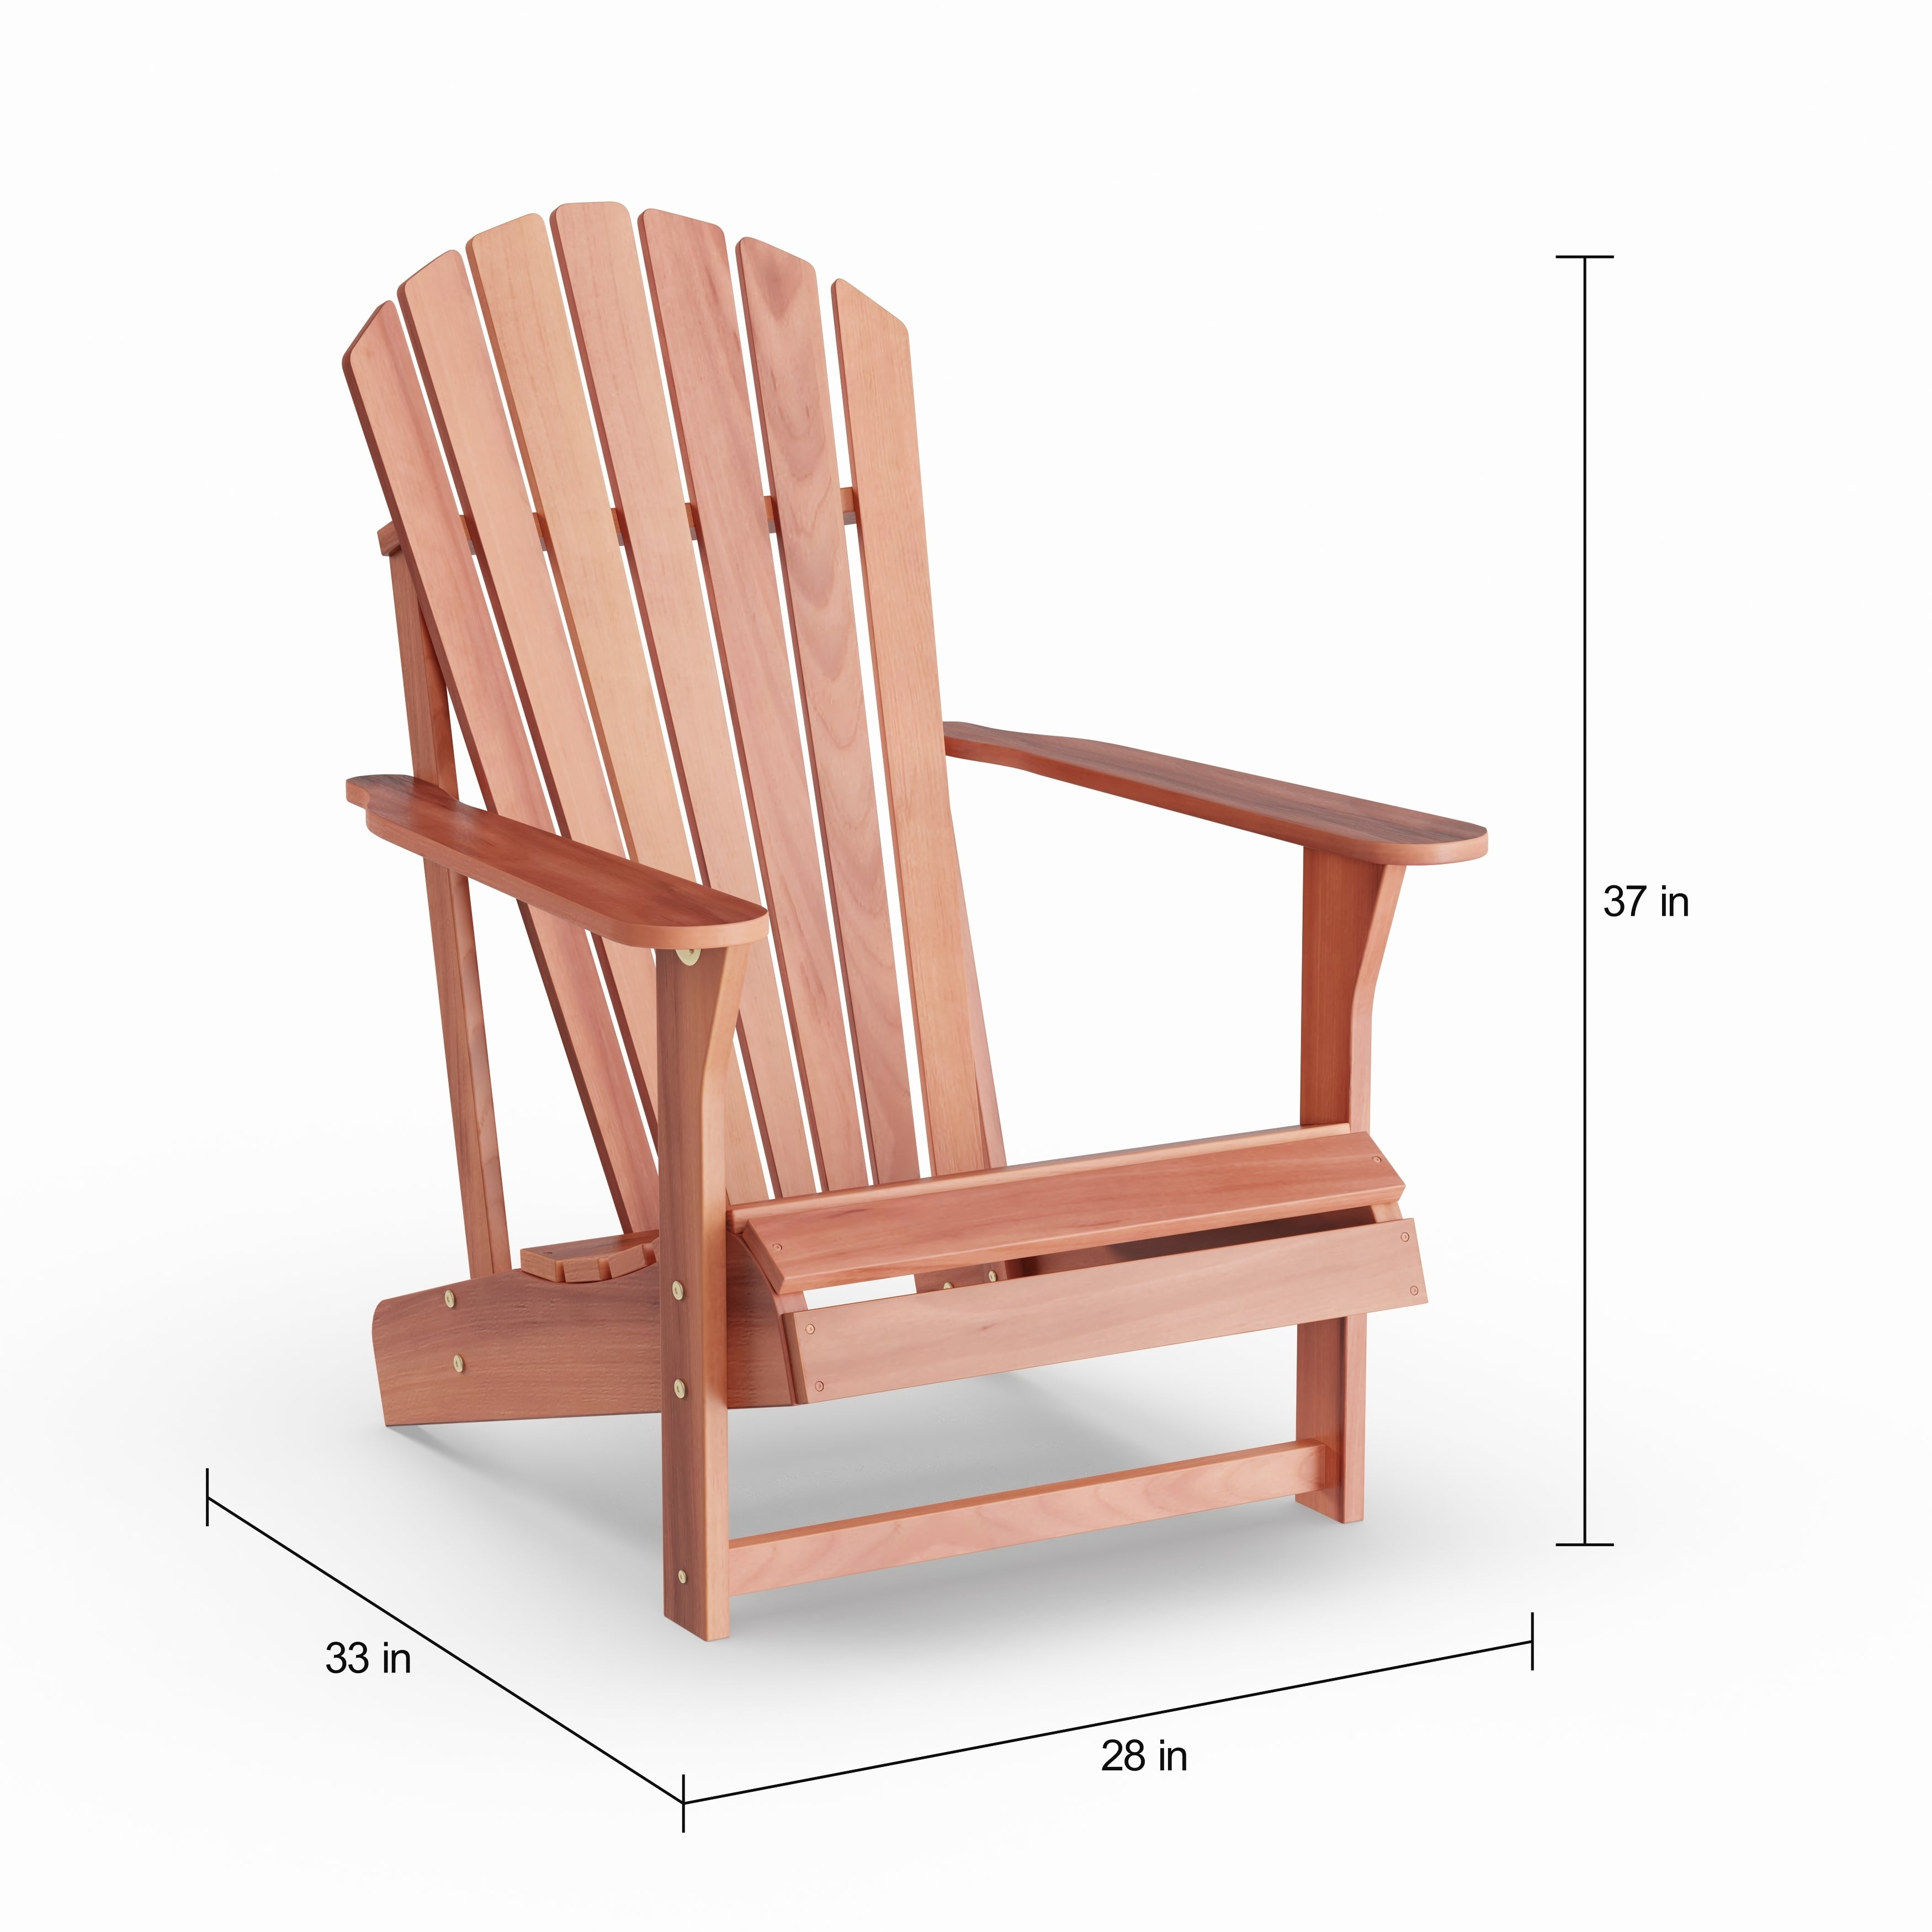 Havenside Home Bergen 2 Piece Adirondack Chair With Footrest Set Free Shipping Today 21258628